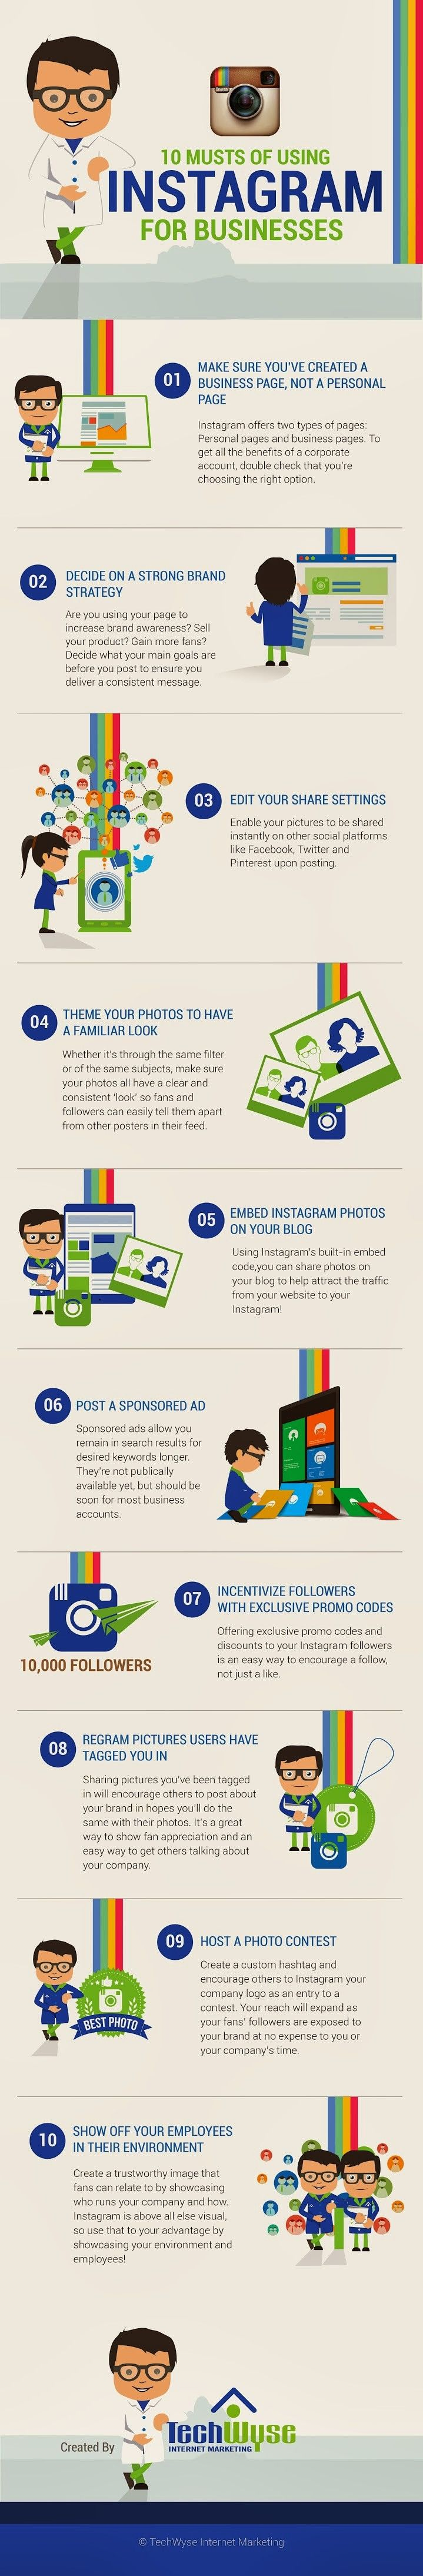 What Are 10 Tips For Business Success On Instagram? #infographic